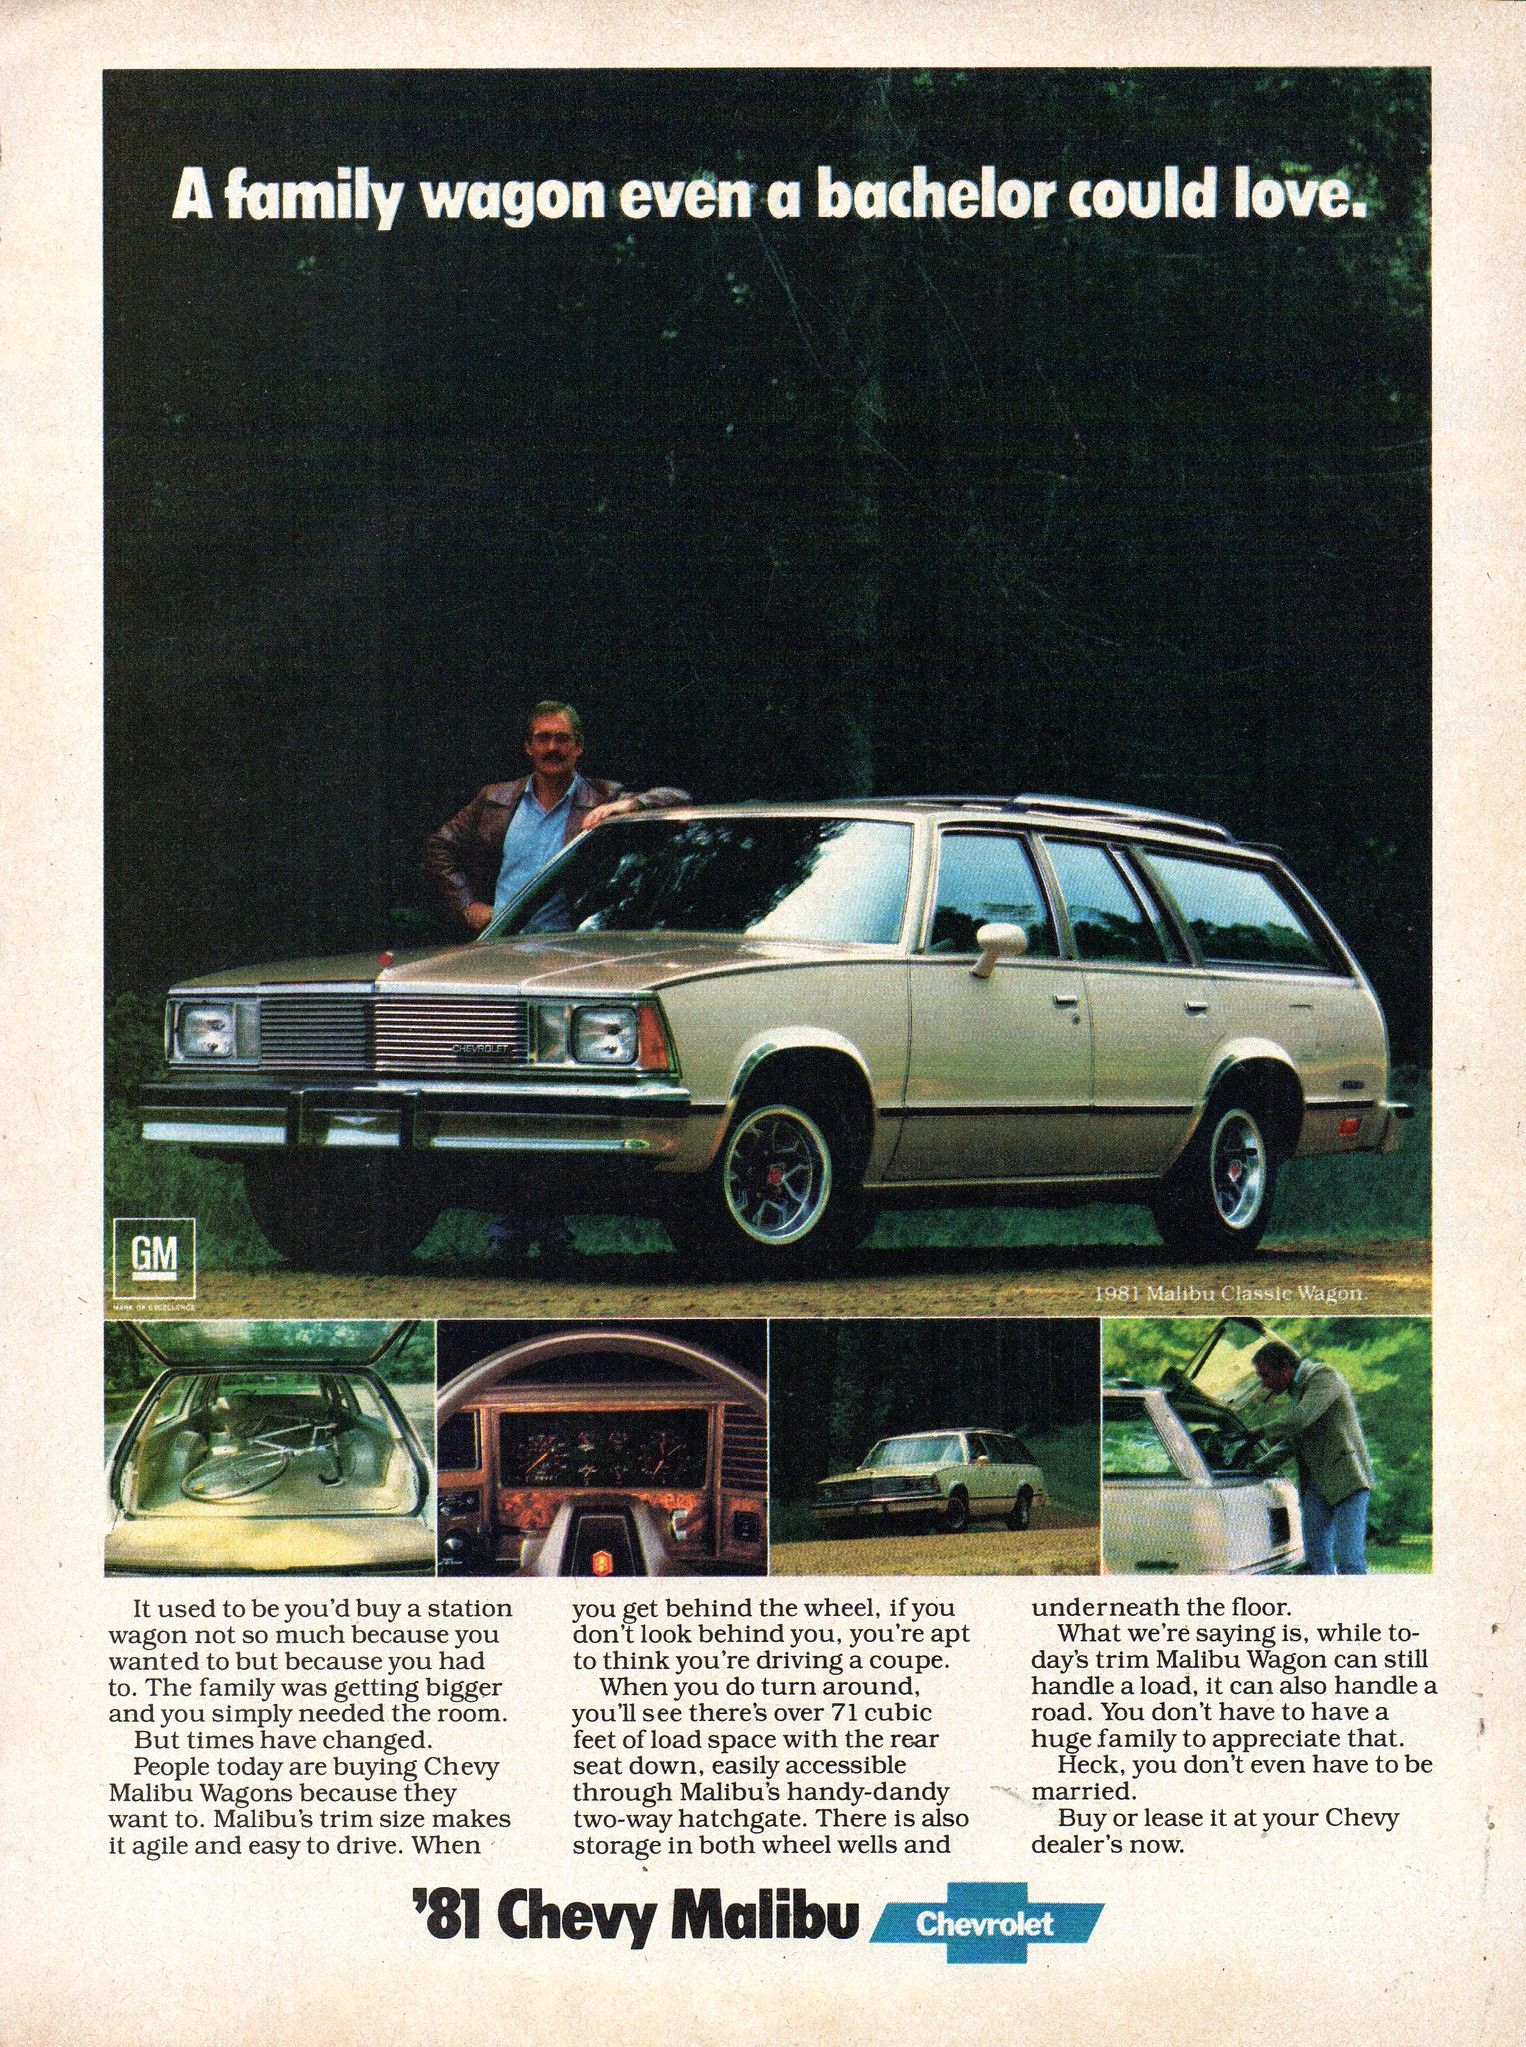 1981 Chevrolet Chevy Malibu Wagon Usa Original Magazine